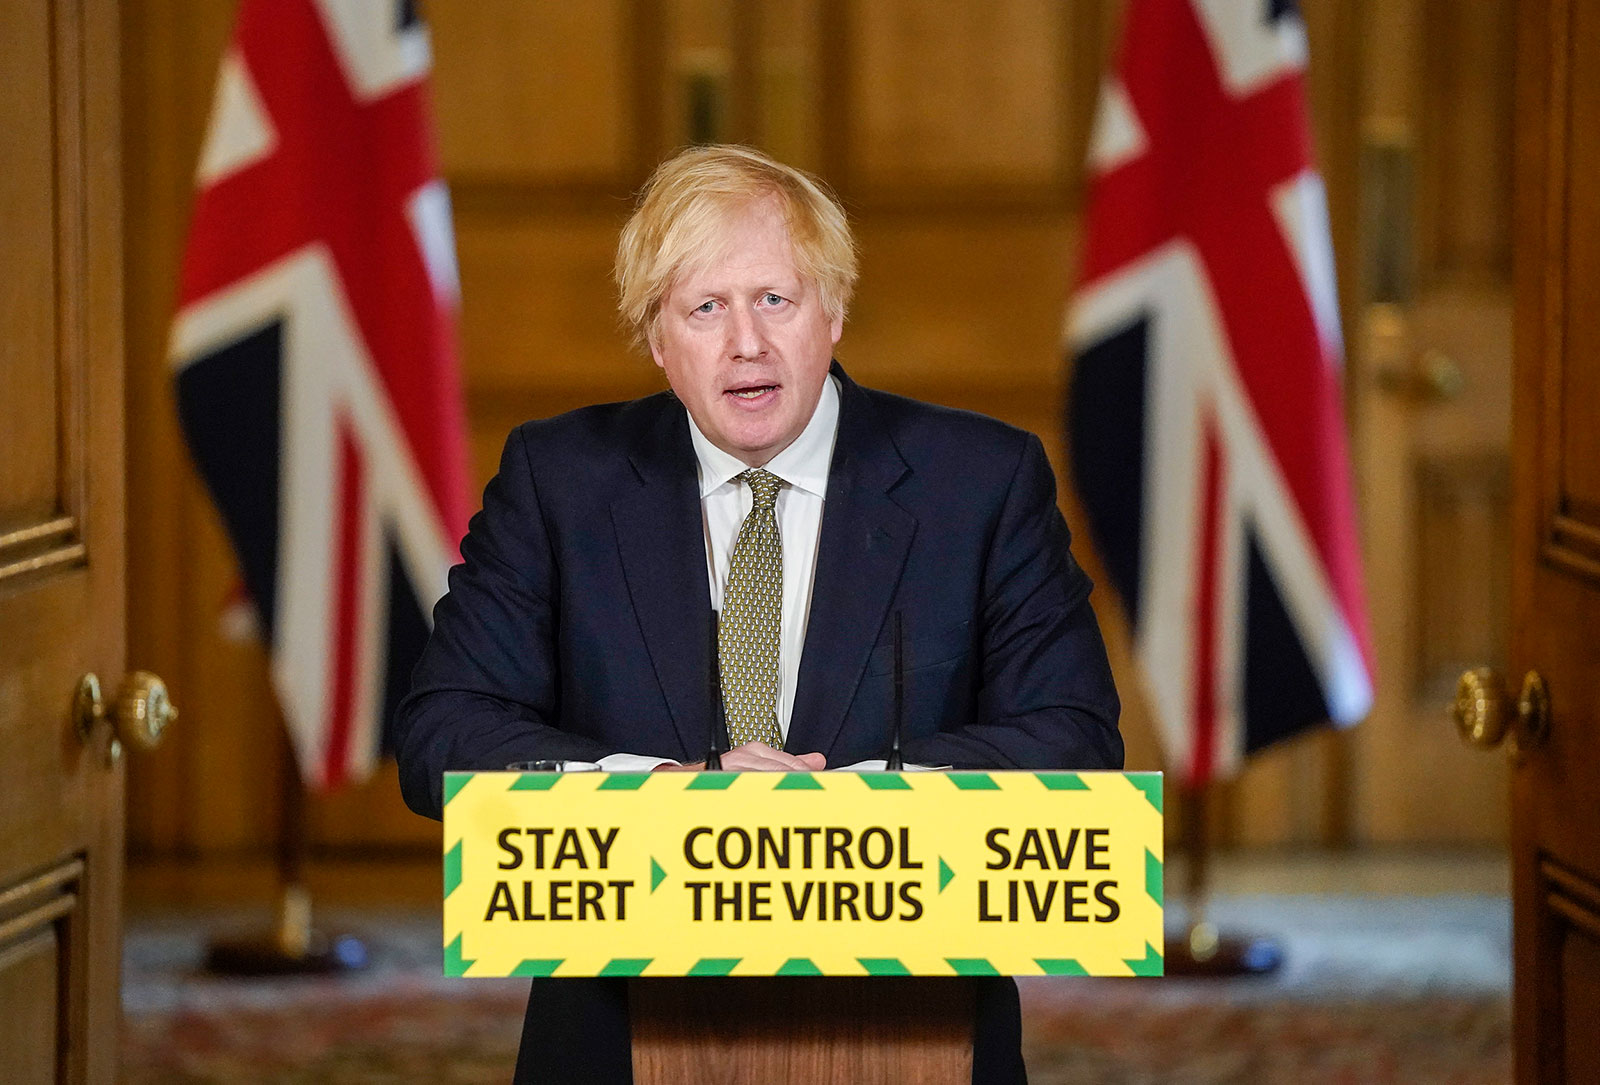 In this photo issued by 10 Downing Street, UK Prime Minister Boris Johnson speaks during a coronavirus news briefing in London on Sunday, May 24.